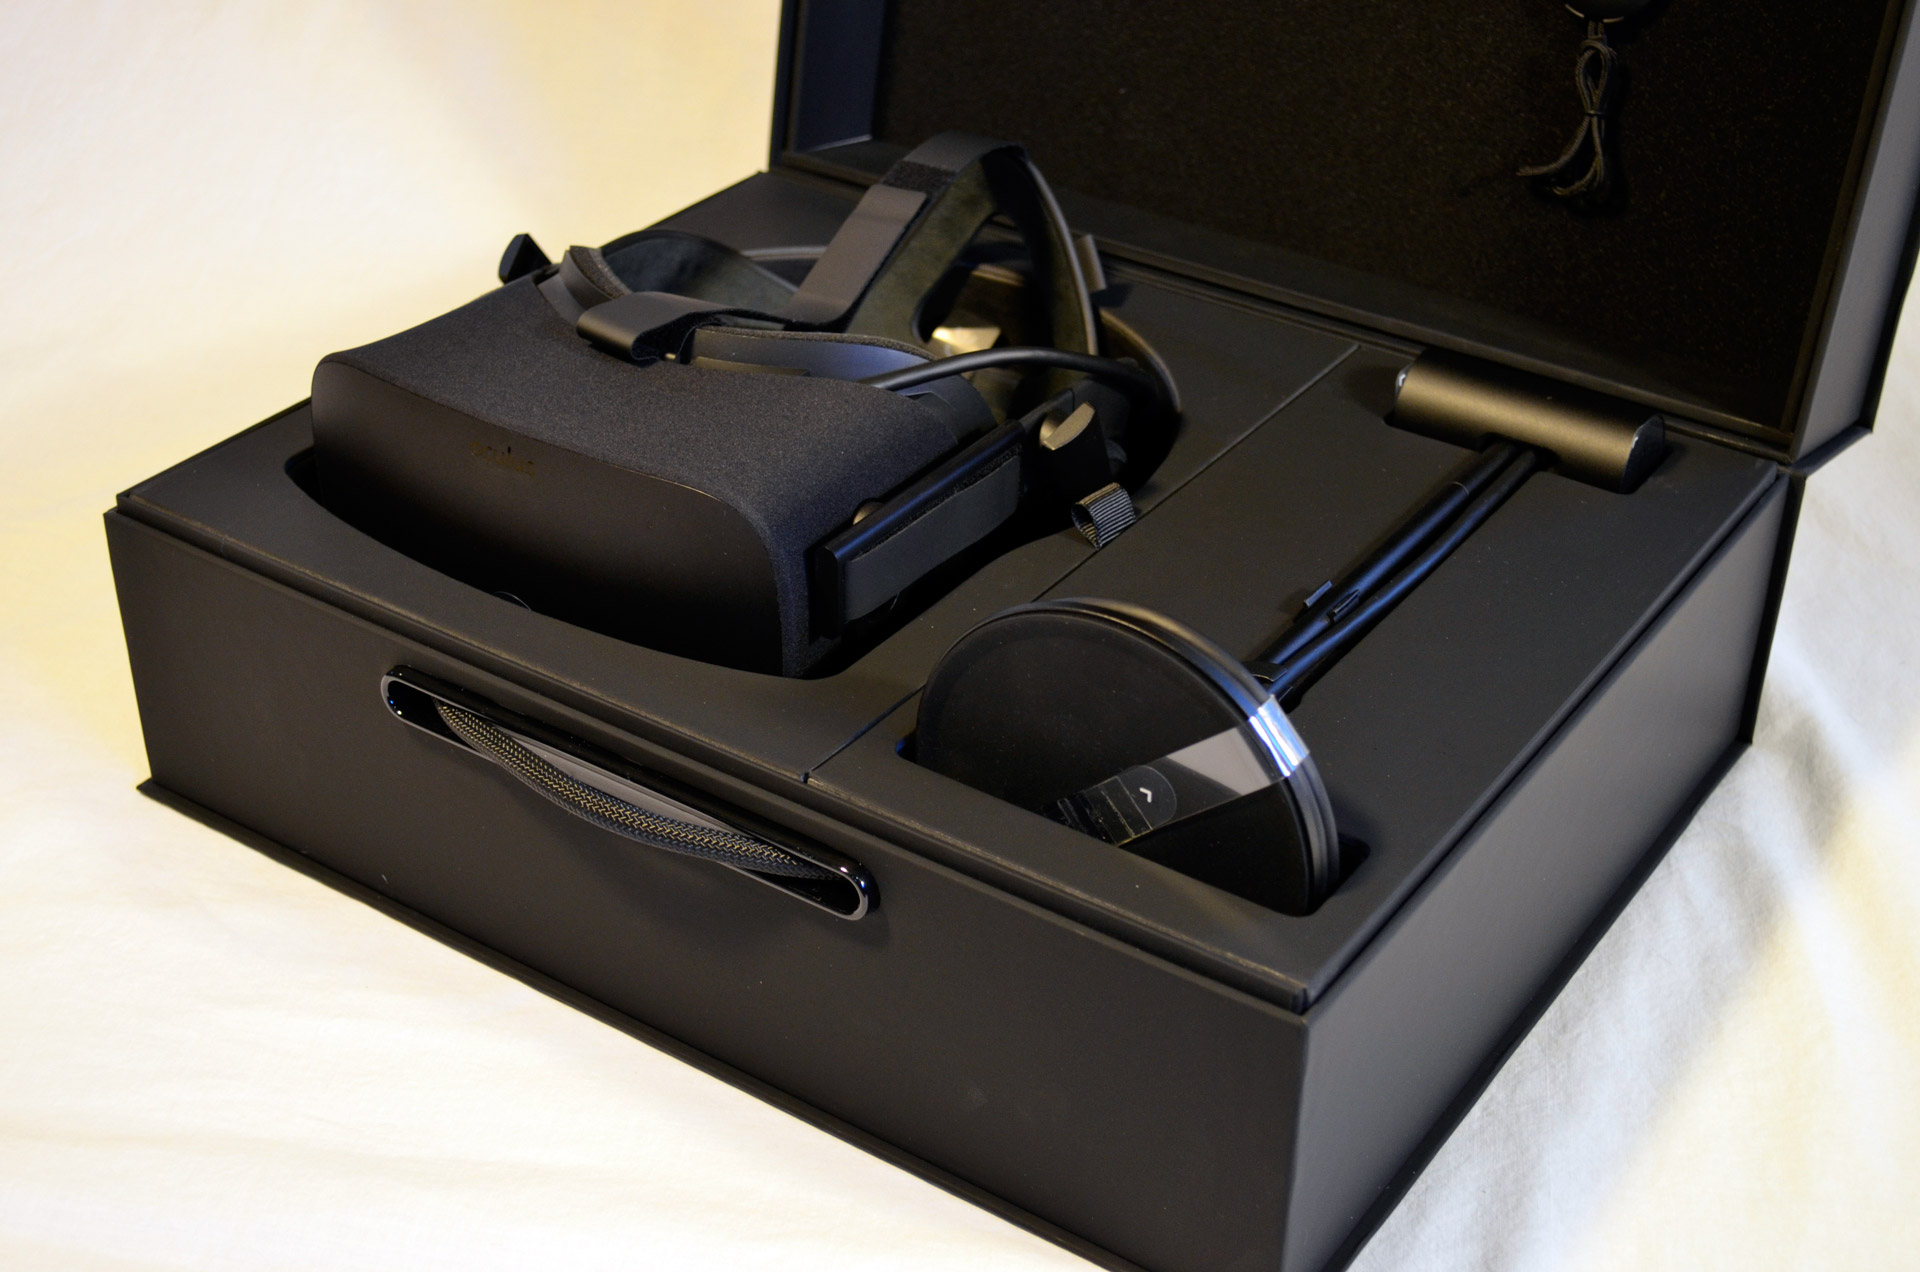 unboxing the new oculus rift step